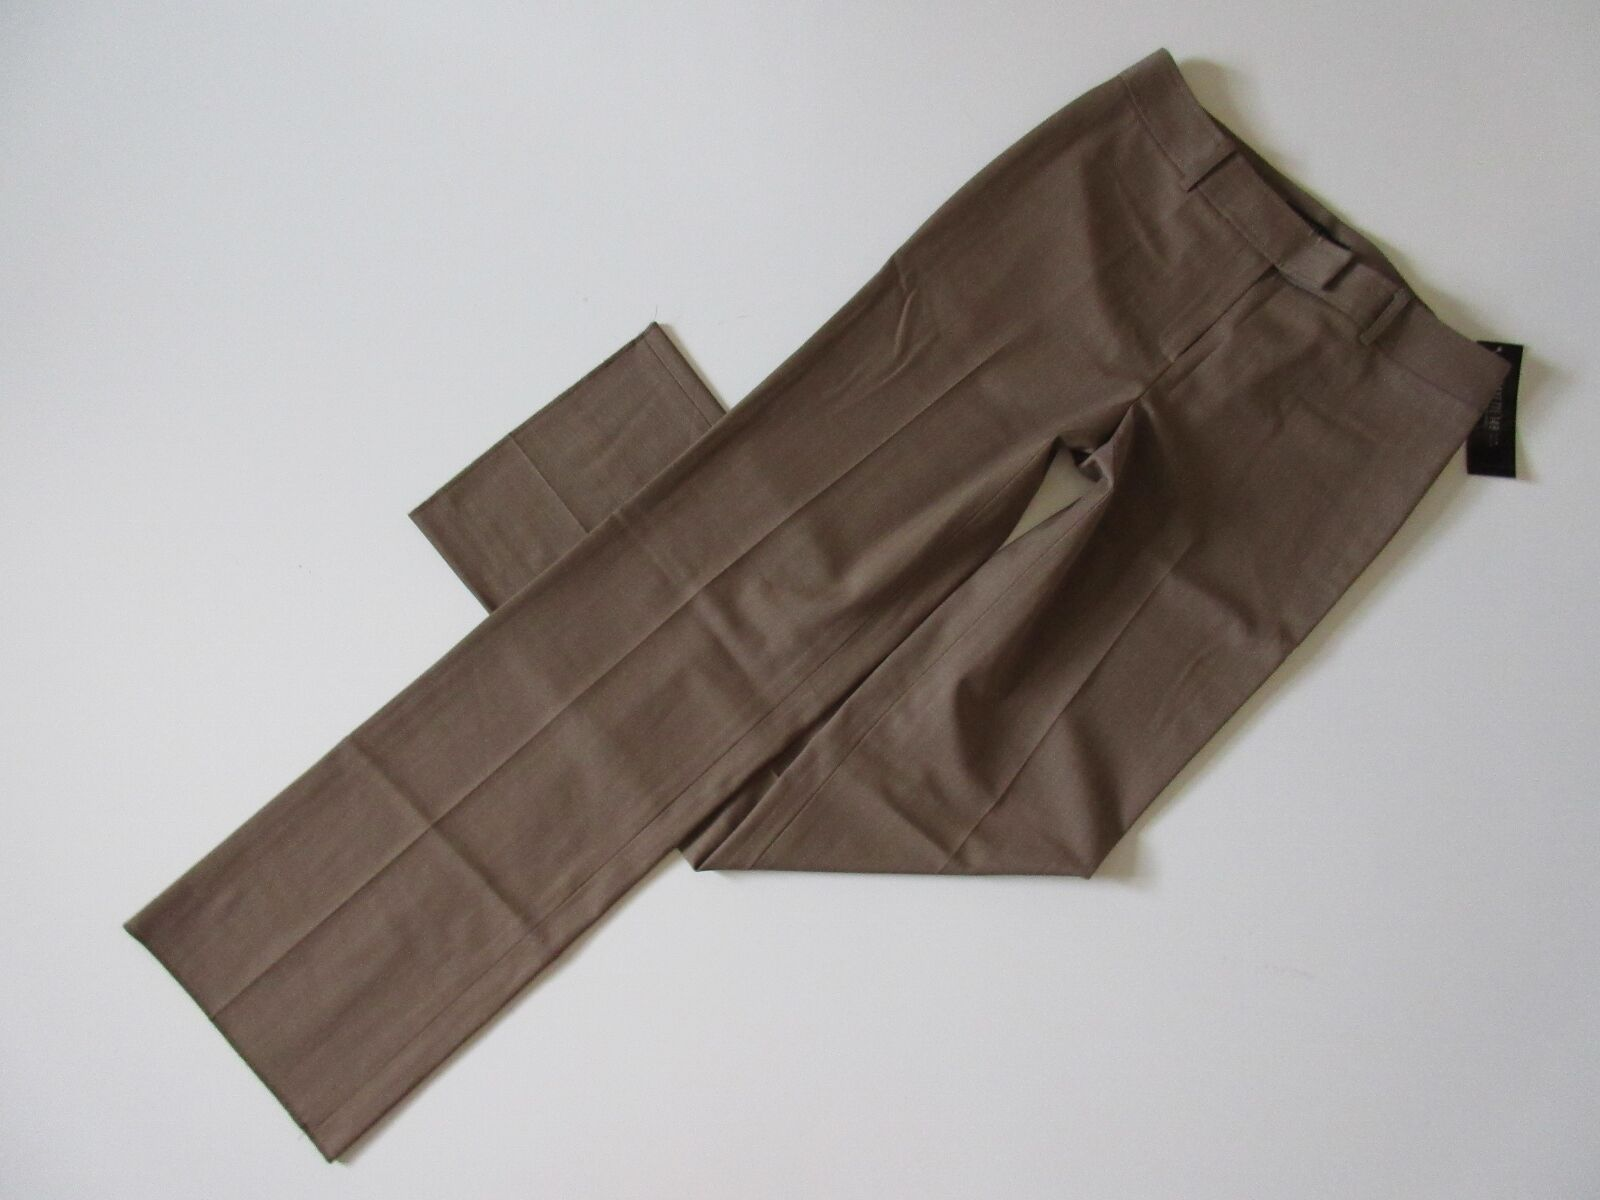 NWT Lafayette 148 Menswear in Taupe Lightweight Stretch Wool Trouser Pant 4